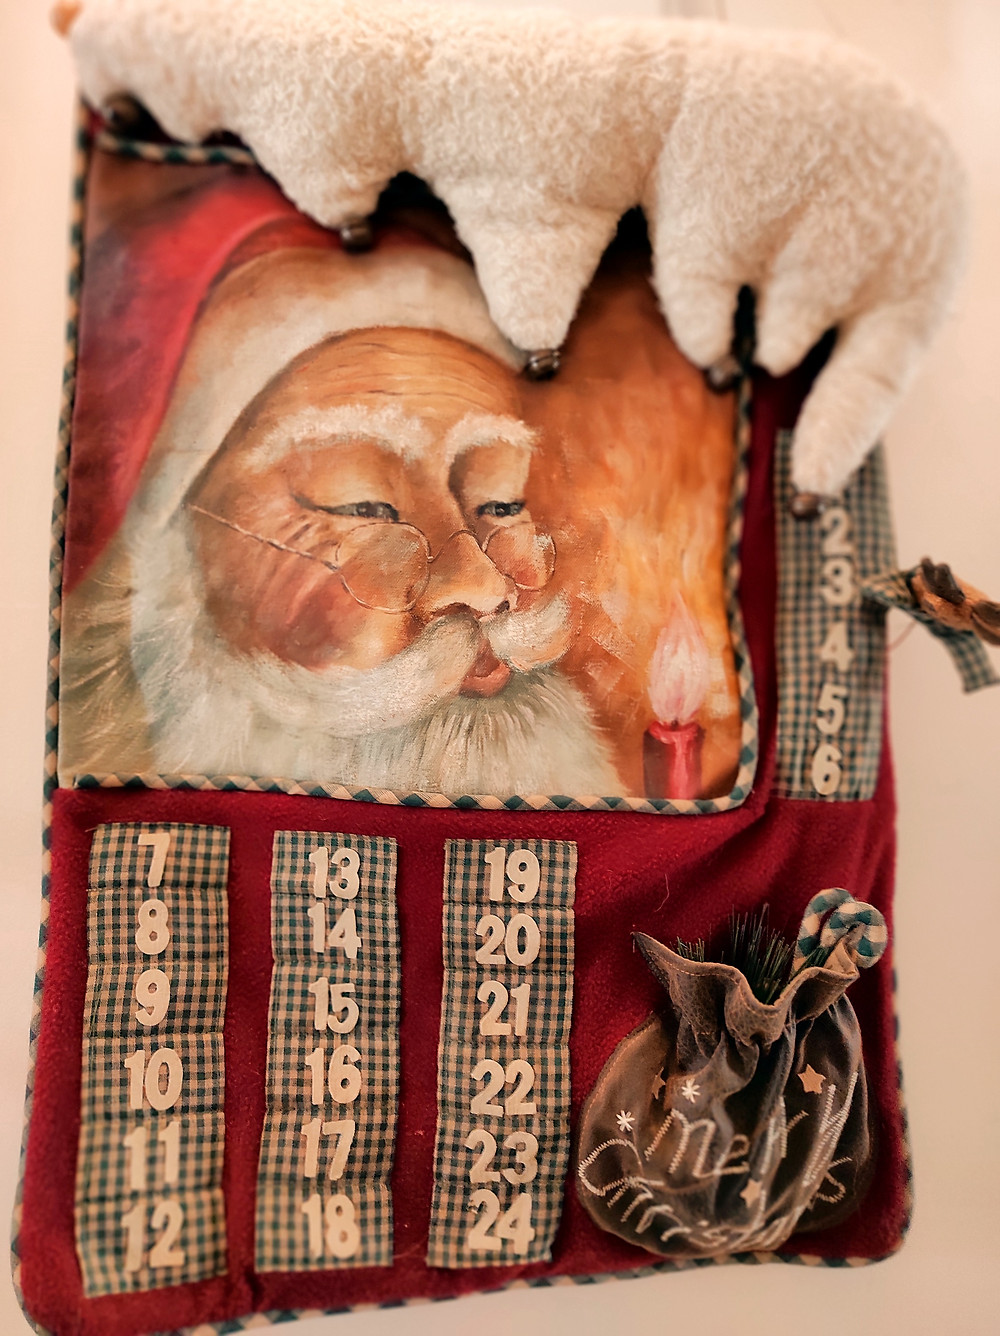 Christmas calendar with Santa Claus and dates